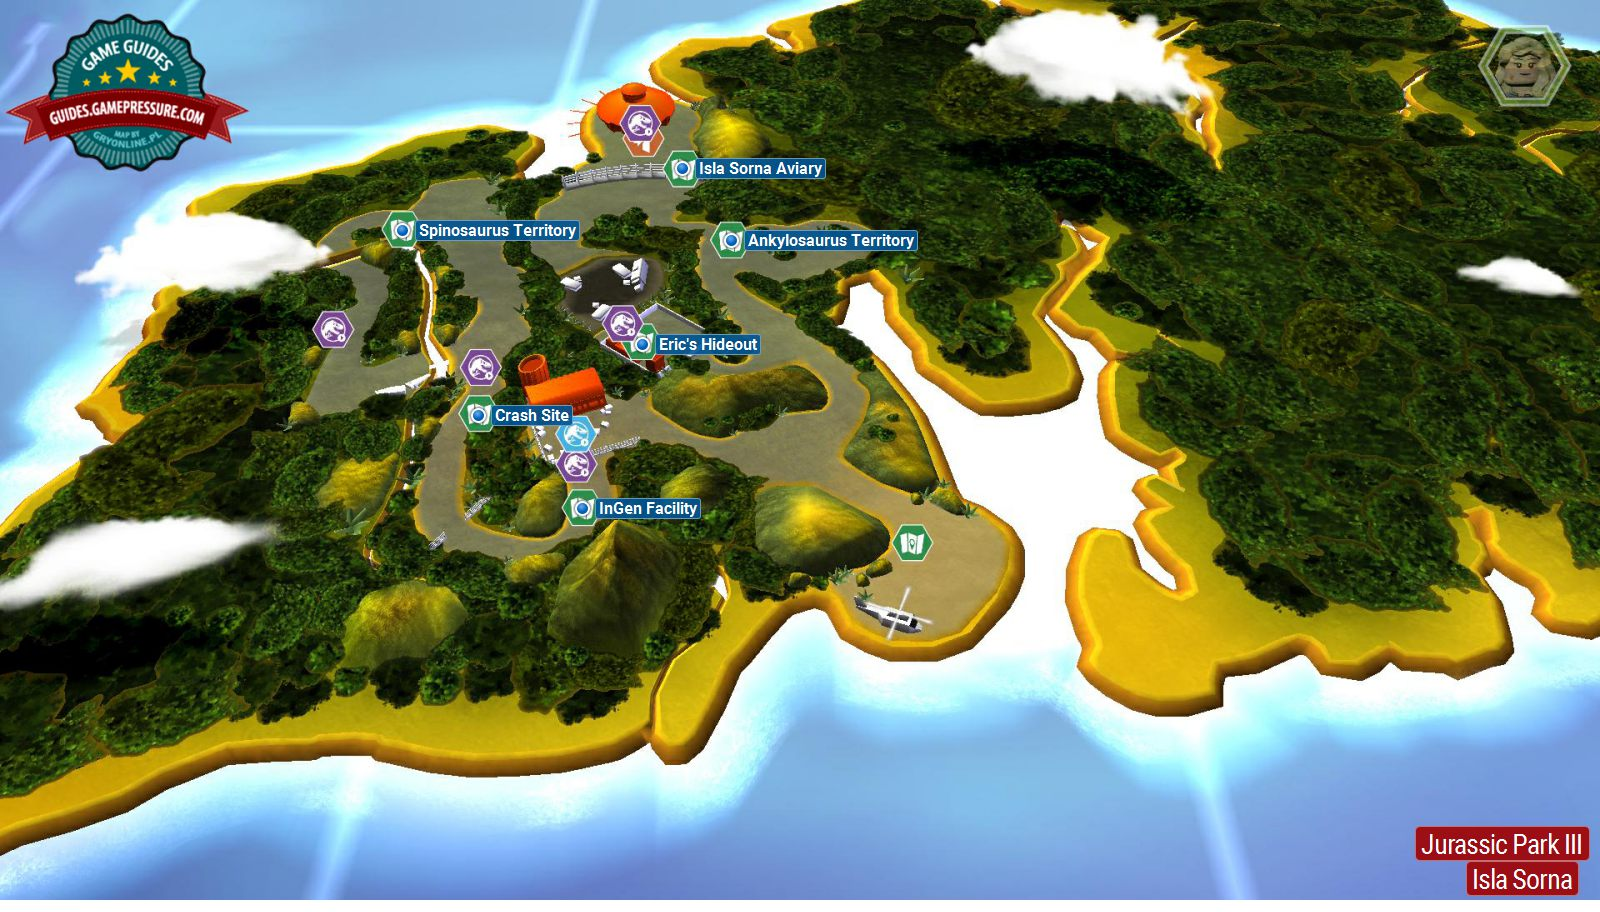 Introduction and map   Jurassic Park III   secrets in free roam     LEGO Jurassic World  Jurassic Park III